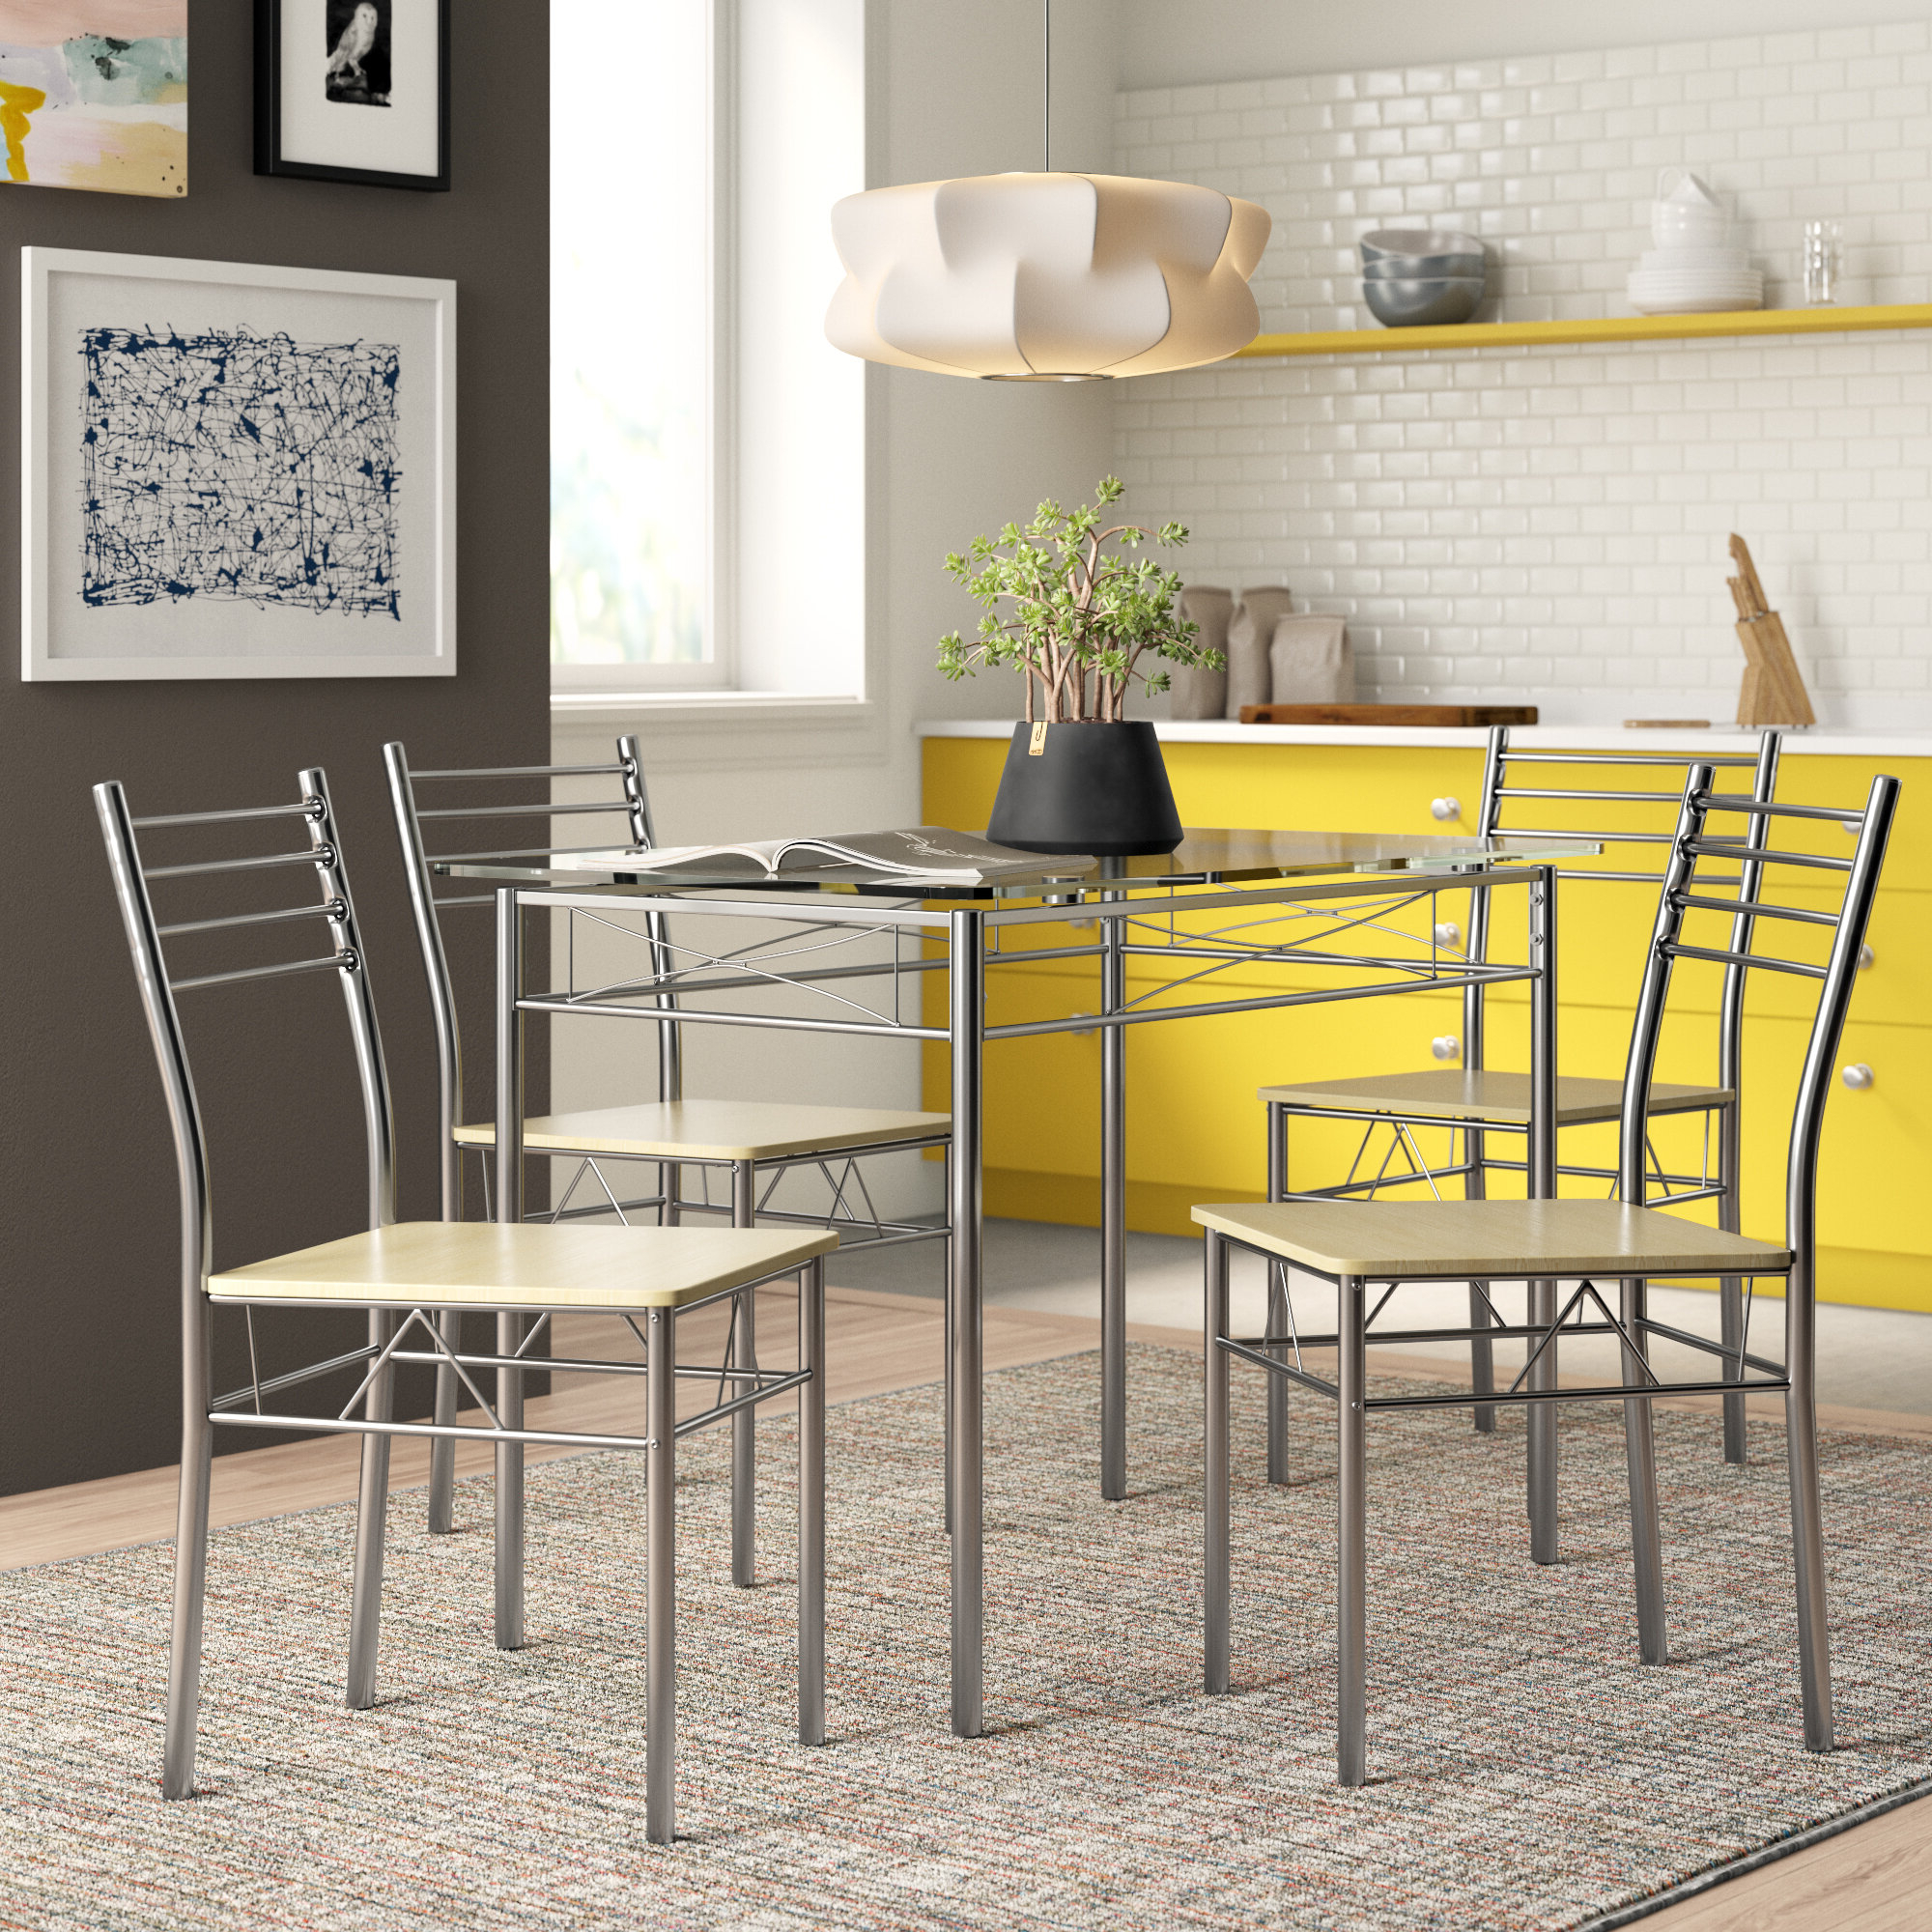 Fashionable Taulbee 5 Piece Dining Sets Intended For North Reading 5 Piece Dining Table Set (Gallery 10 of 20)